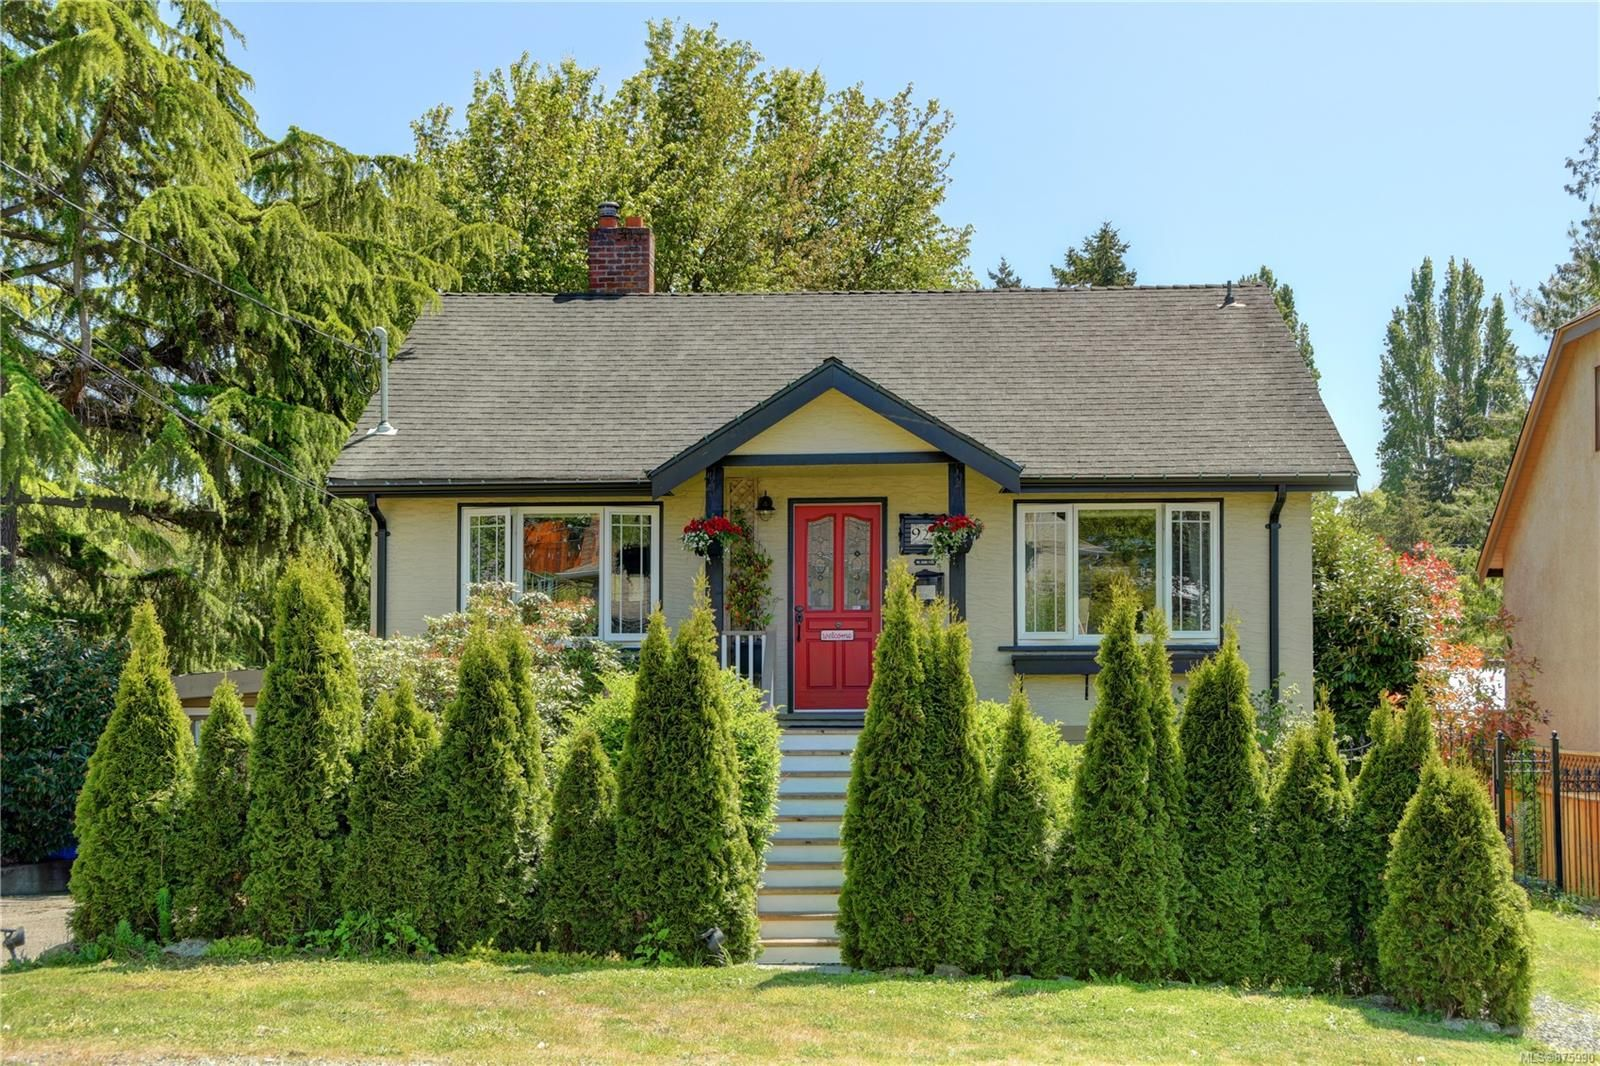 Main Photo: 929 Easter Rd in : SE Quadra House for sale (Saanich East)  : MLS®# 875990